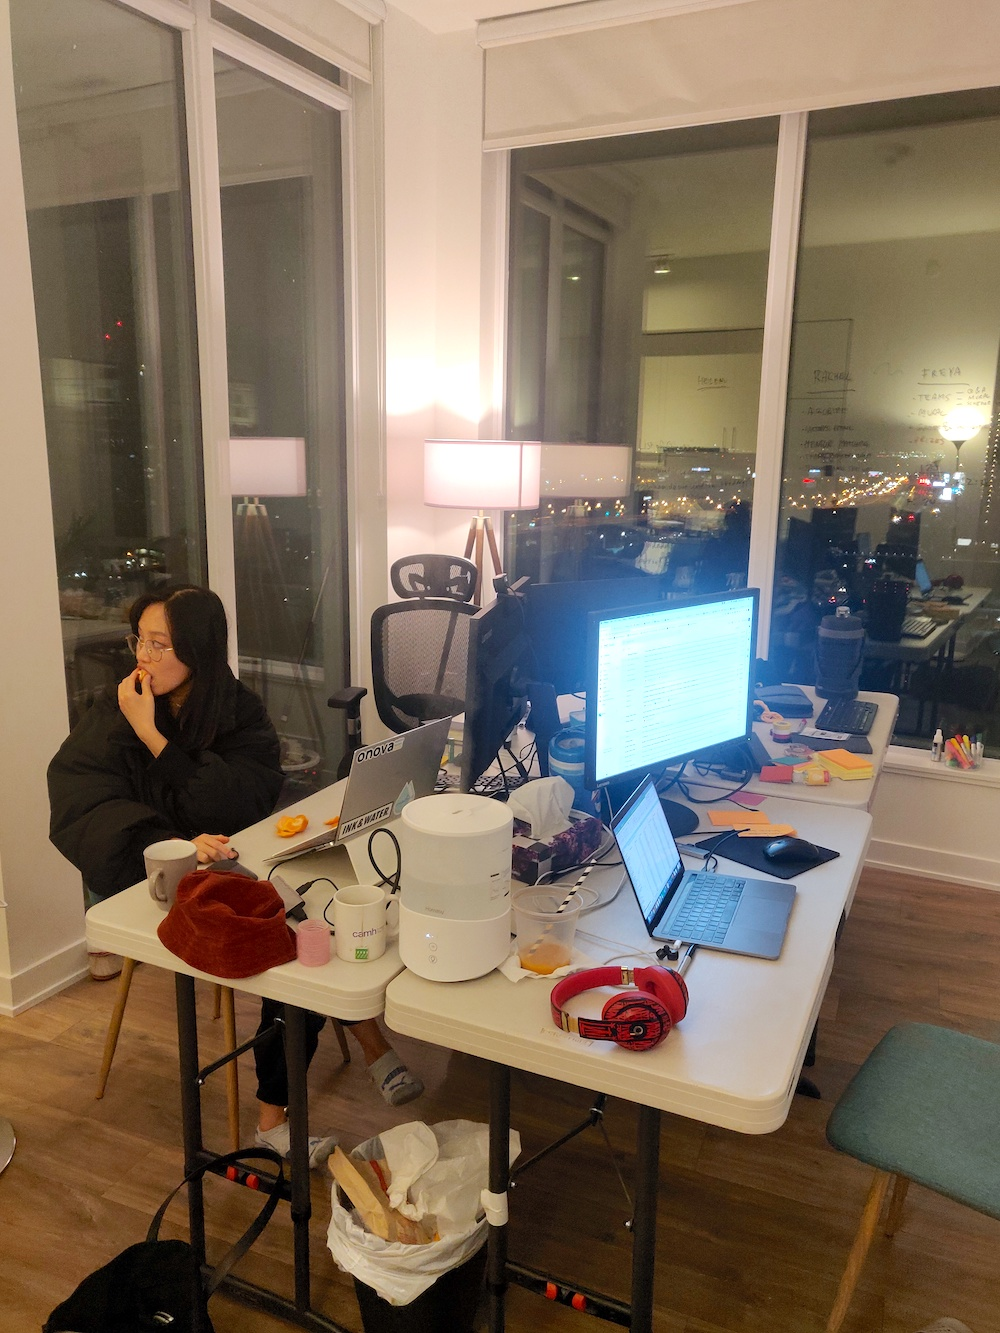 The Onova team worked non-stop throughout the entire event for Burger Hack